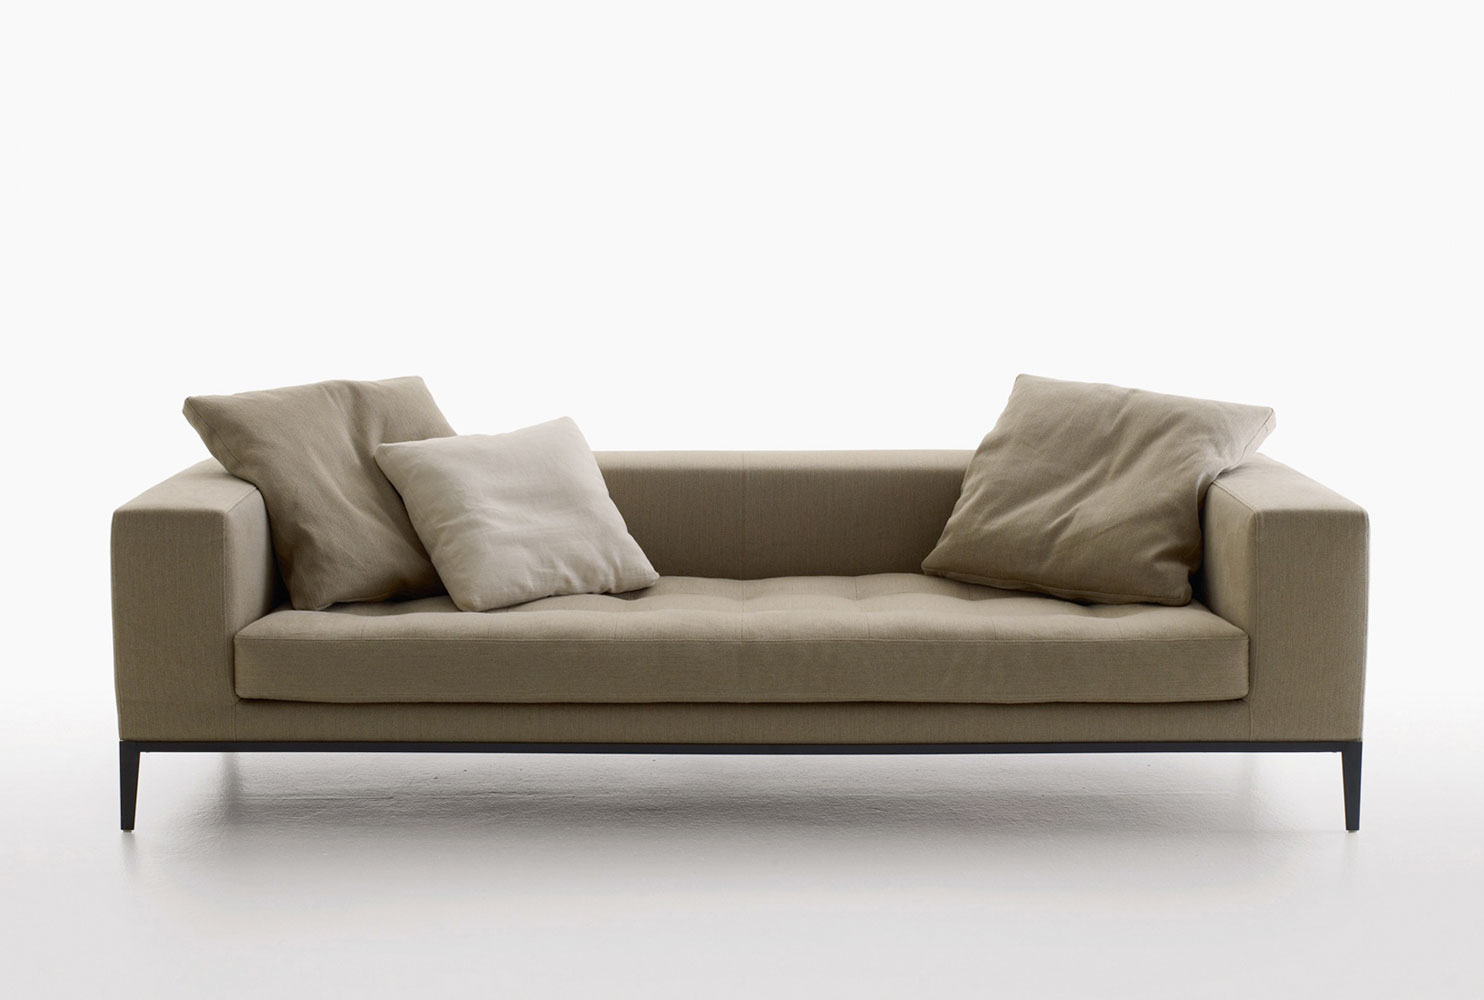 Maxalto b b italia simplex 2 sofa buy from campbell for B b couch